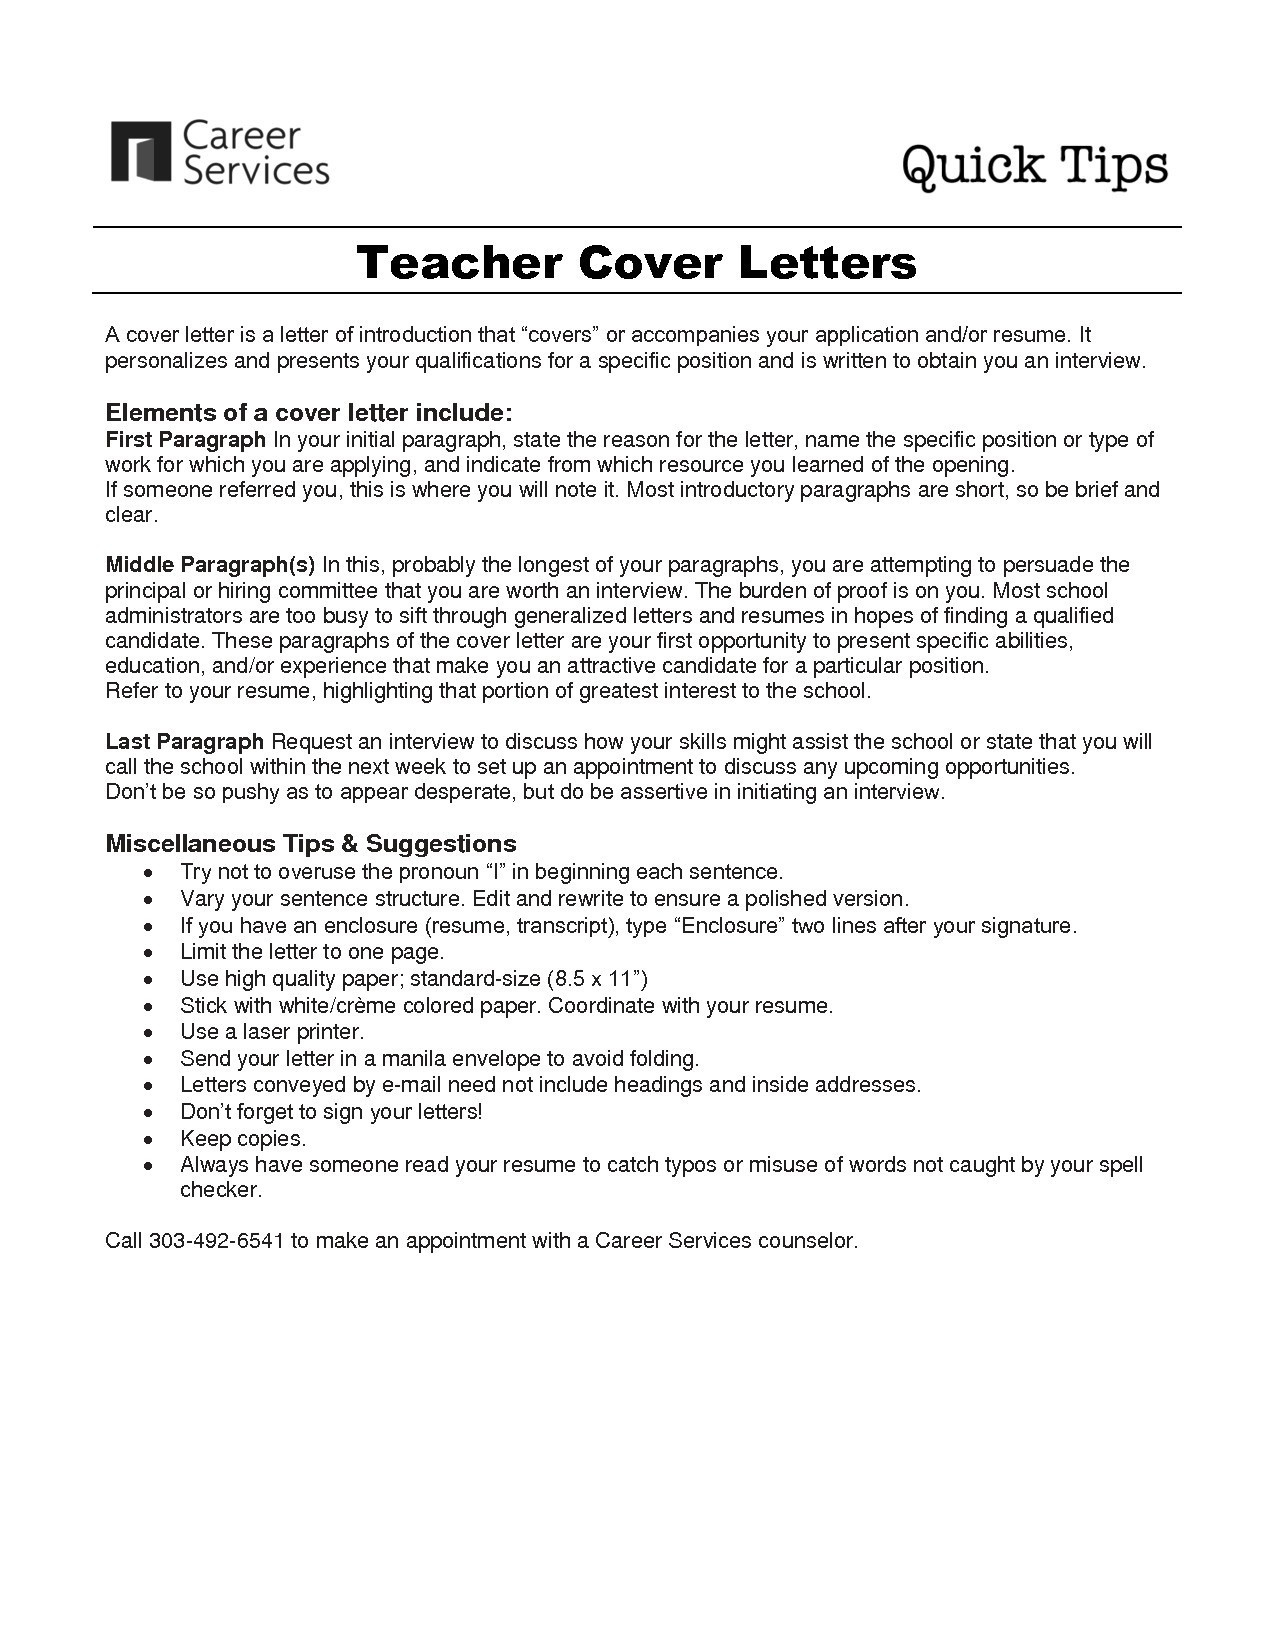 School Counselor Resume - Qualifications and Skills Resume Reference Luxury Resume Tutor